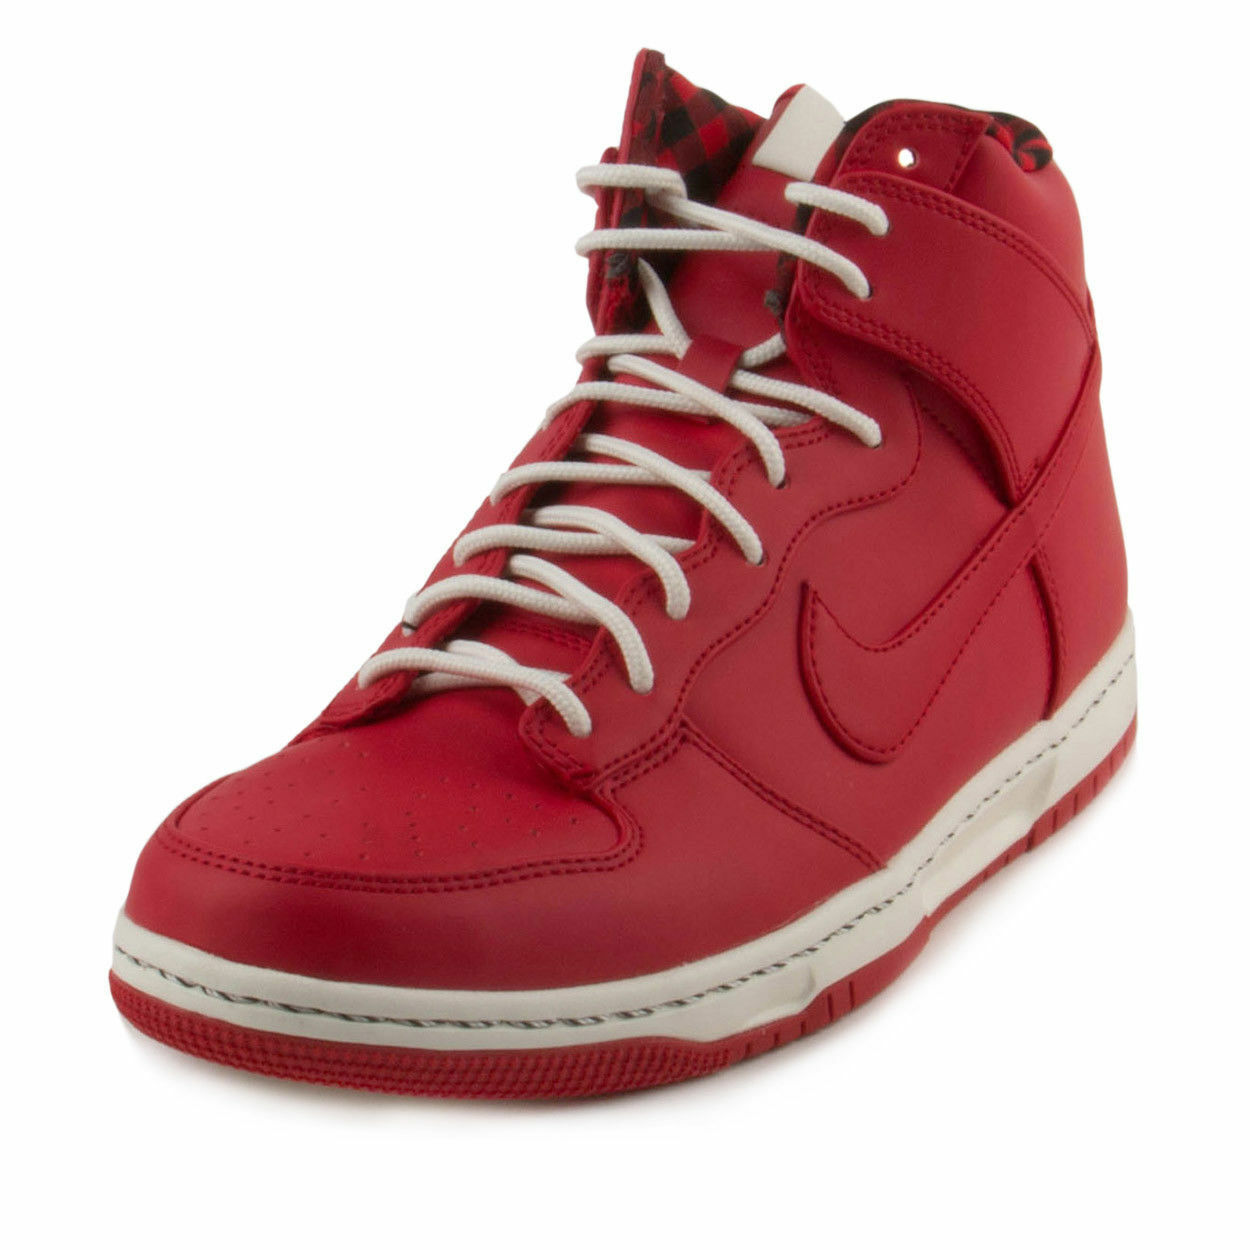 New Nike Dunk Ultra Men's Shoes Sneakers Sport Red/Sail 845055 601 best-selling model of the brand